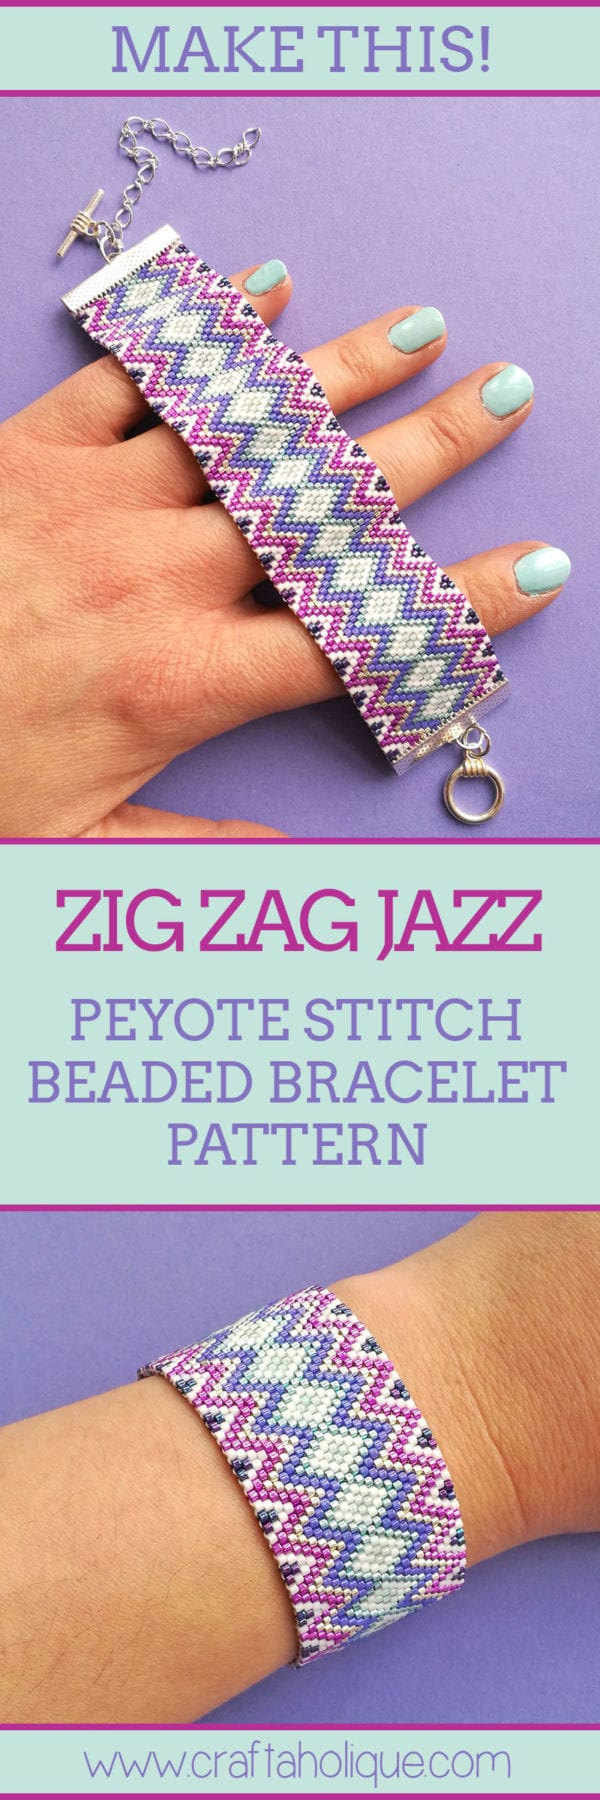 Zig Zag Jazz - Flat Even Count Peyote Pattern from Craftaholique